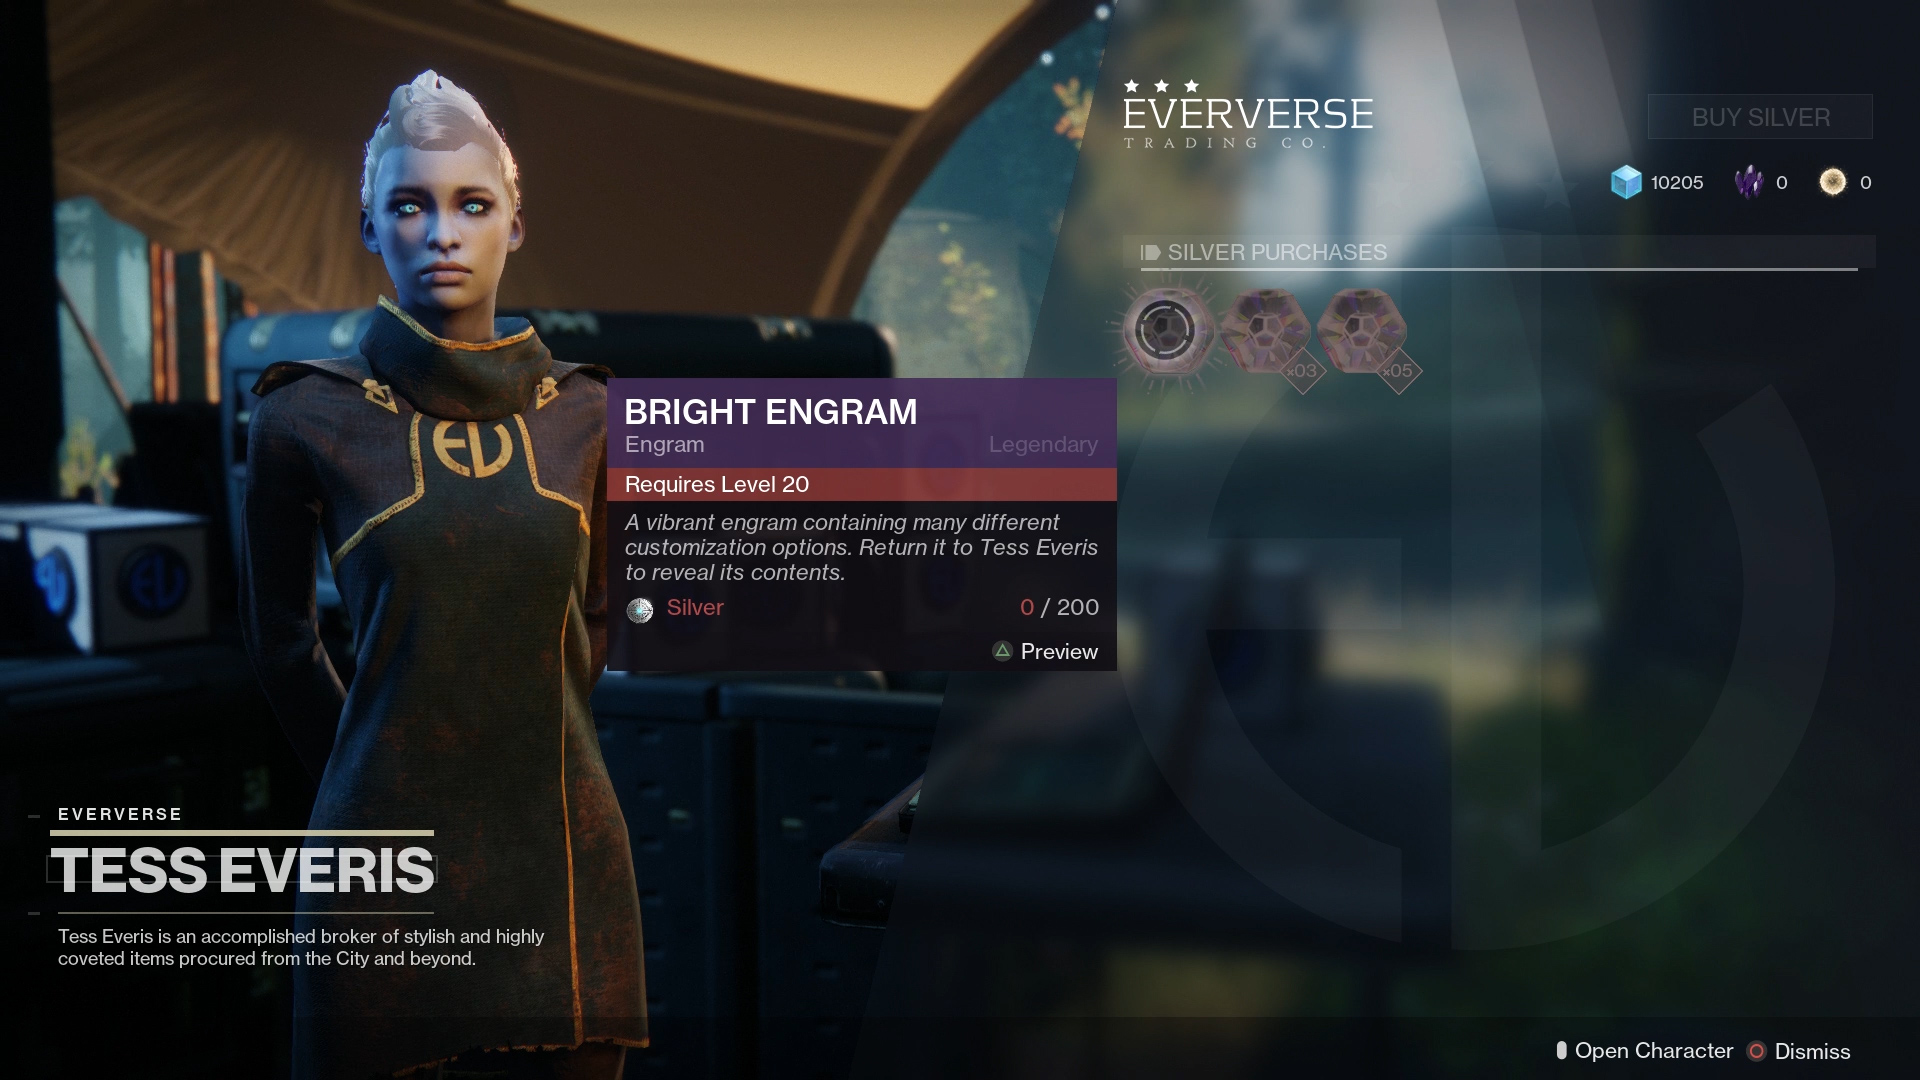 Destiny 2 Changes Rigged XP System After Fans Catch On